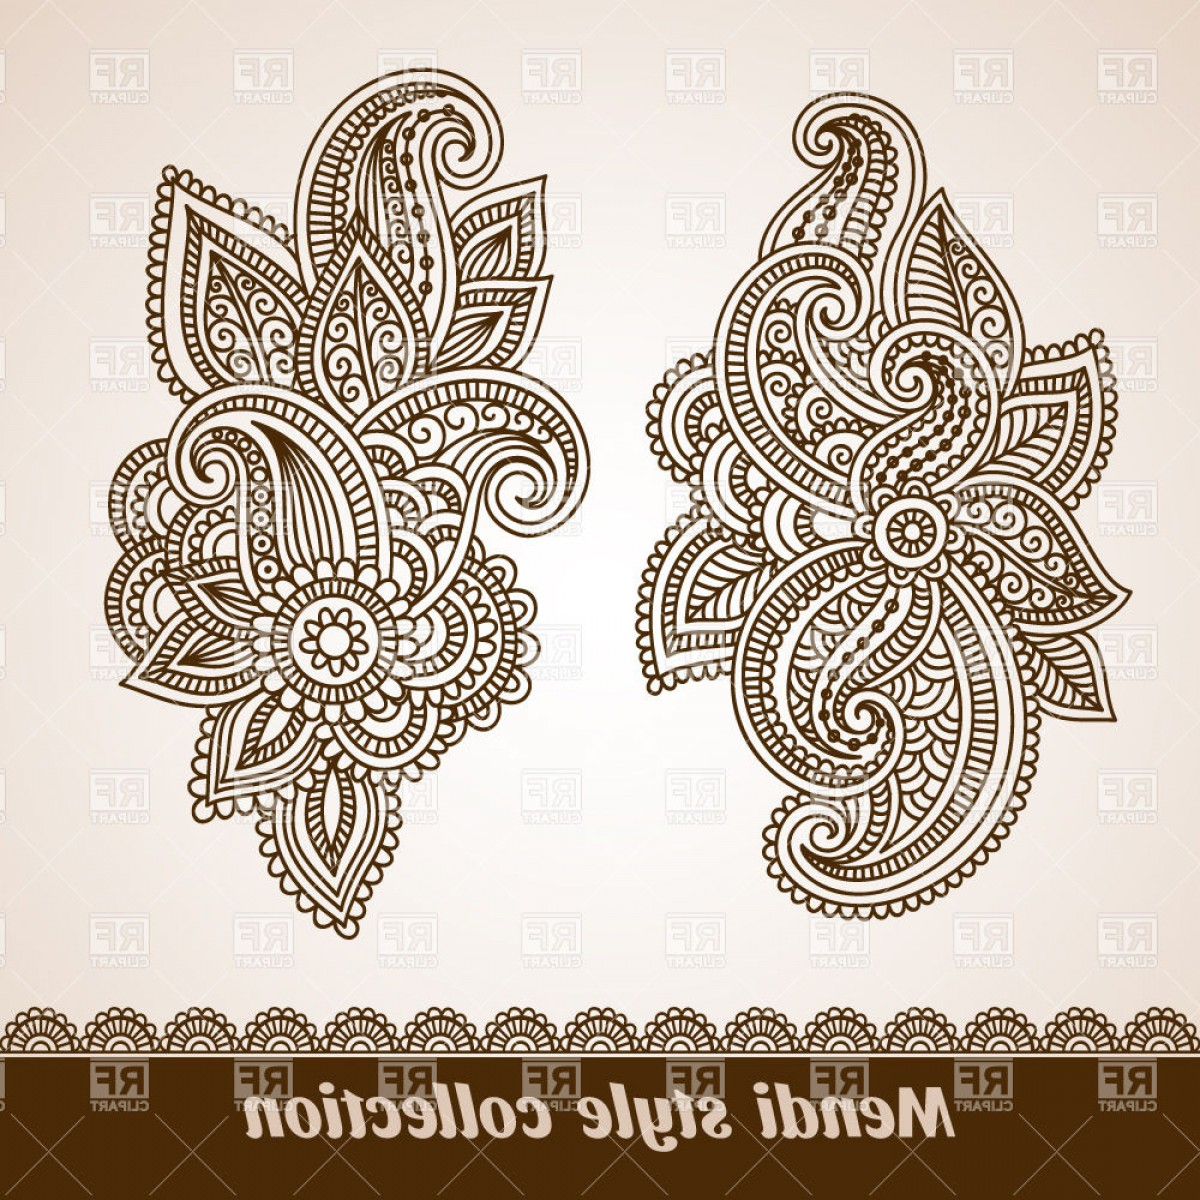 India Clip Art Vector Designs: Mendi Style Indian Ethnic Elements Vector Clipart